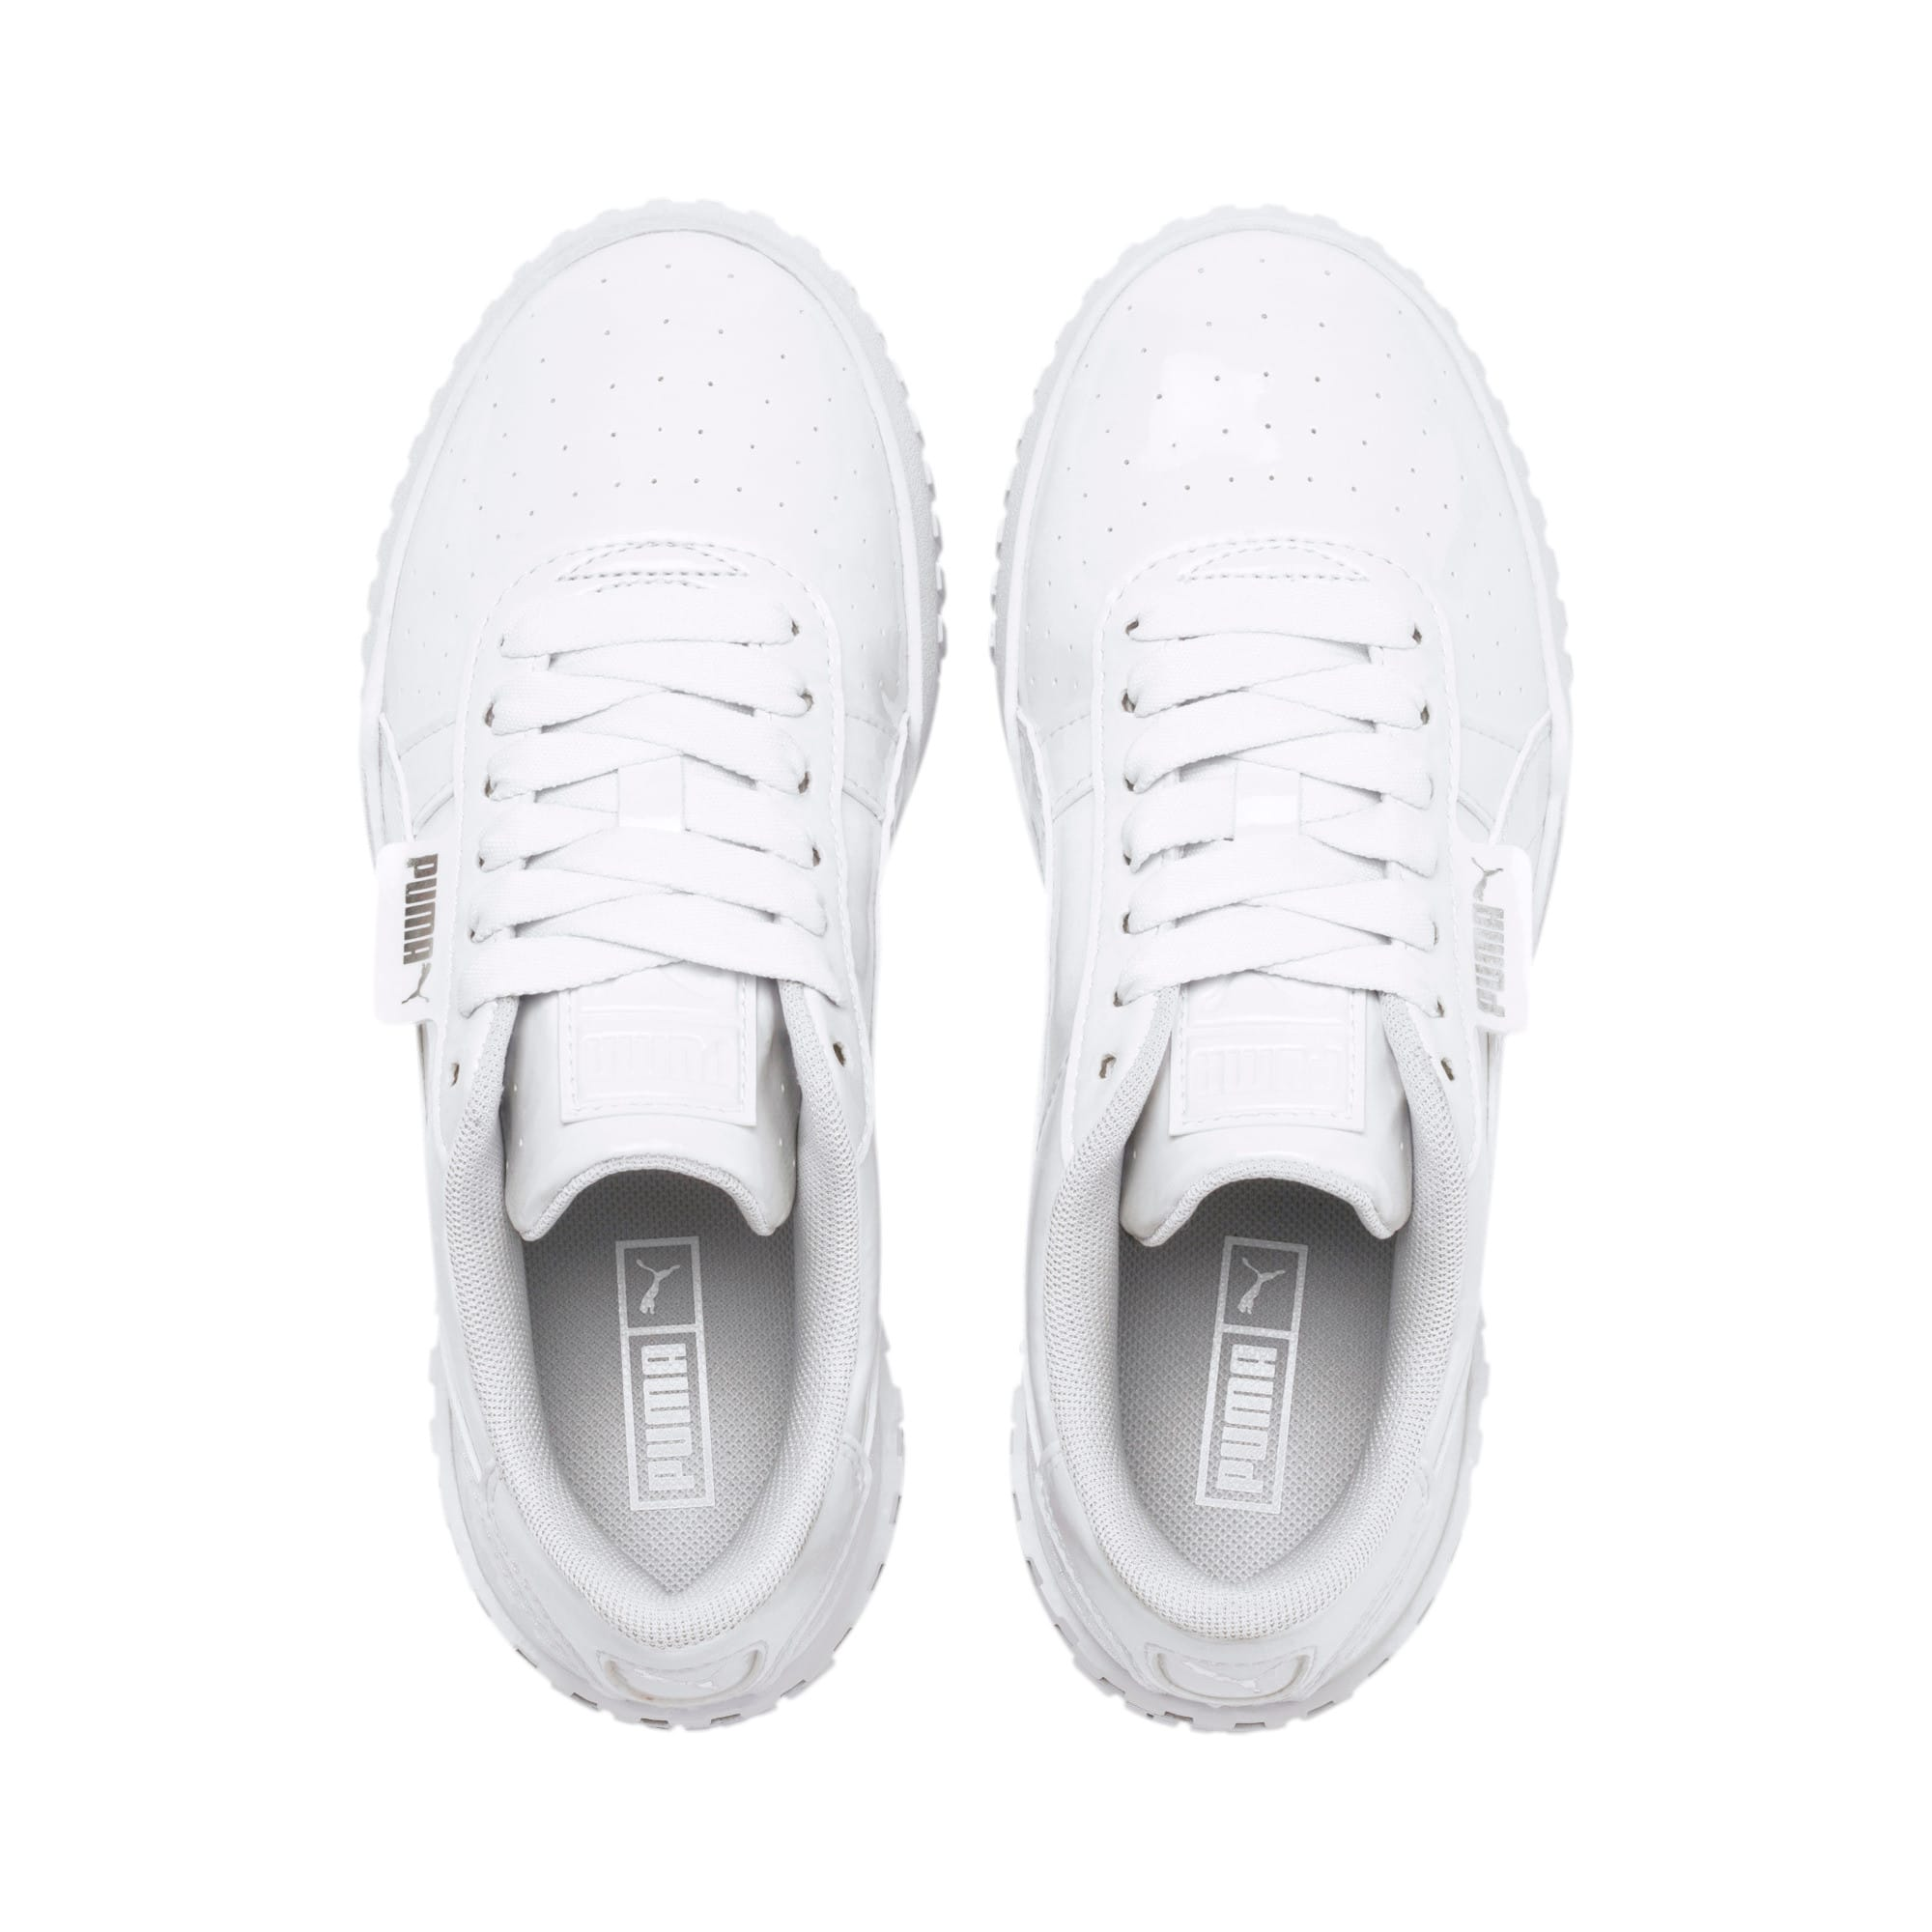 Thumbnail 6 of Cali Patent Youth Trainers, Puma White-Puma White, medium